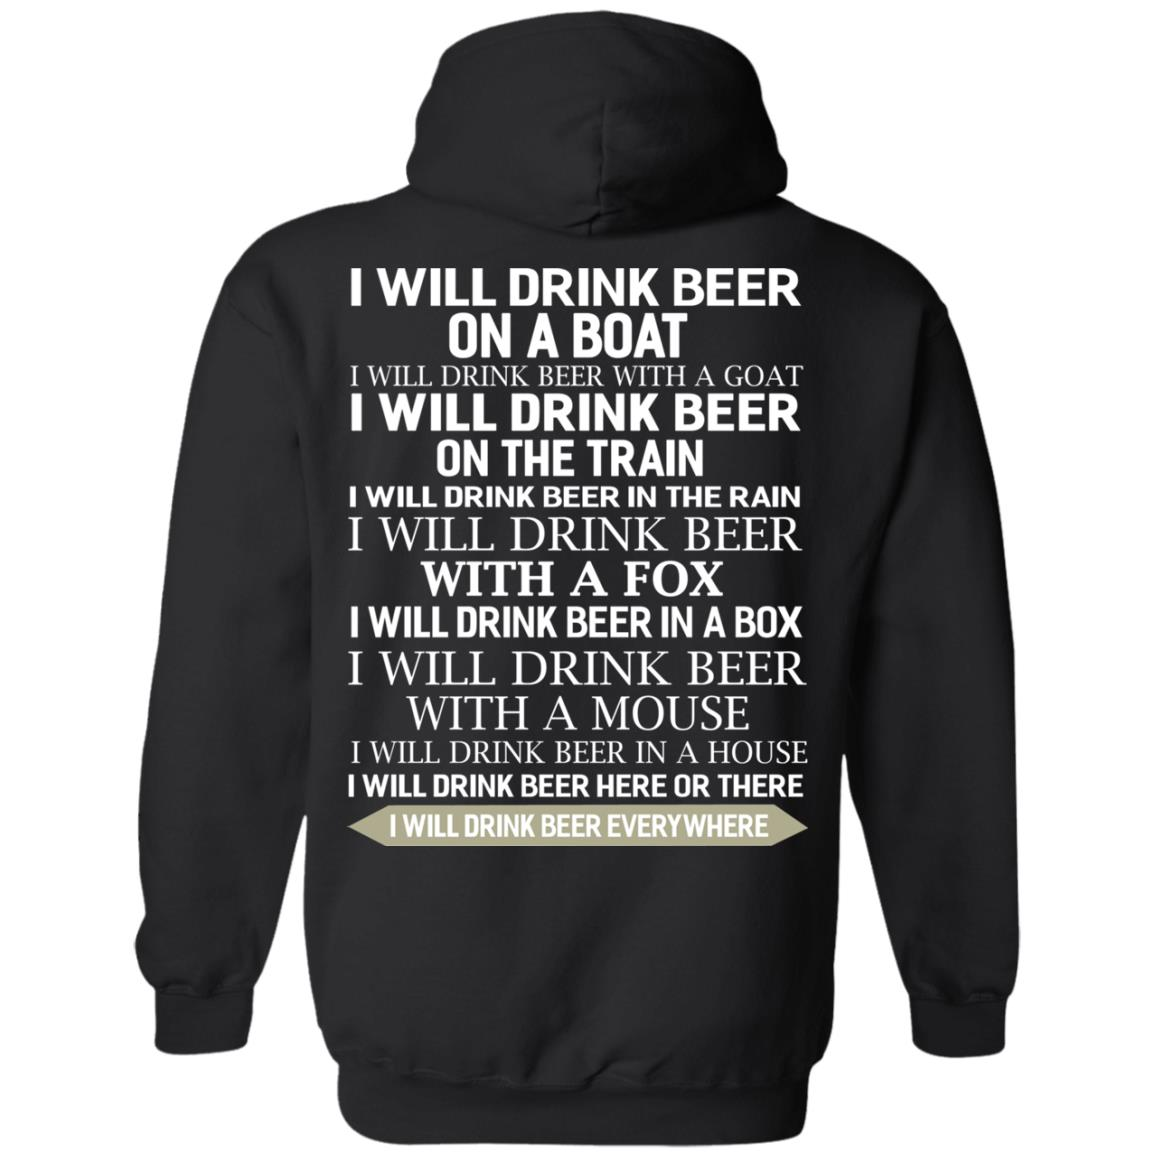 image 318 - I Will Drink Beer On a Boat I Will Drink Beer With a Goat Shirt